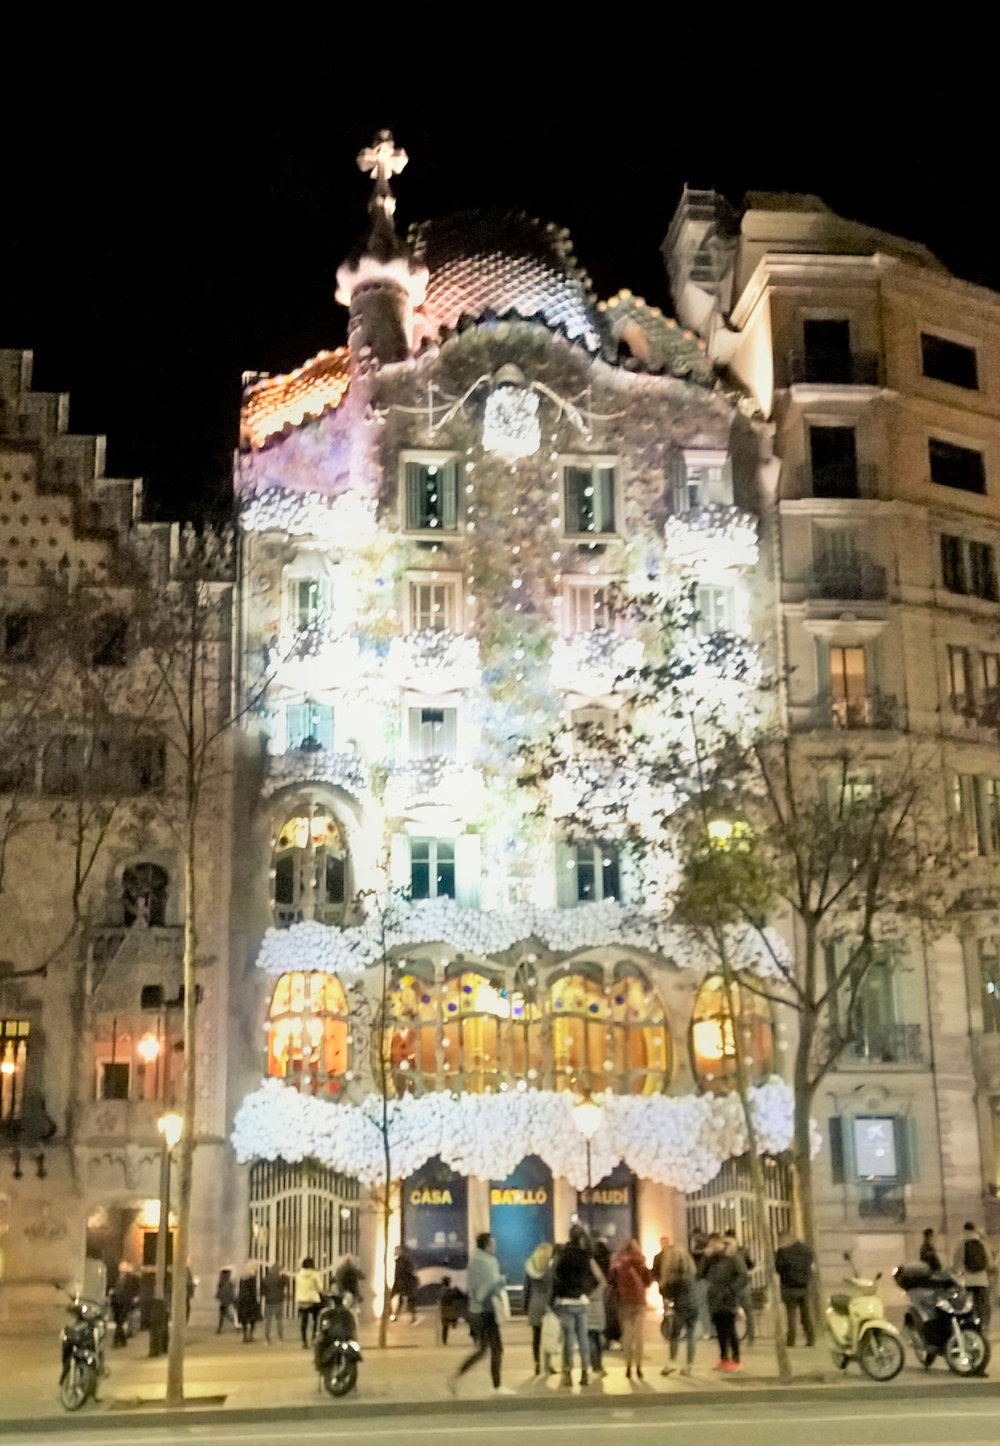 Still, Barcelona is the true gem for Gaudí-lovers as you can happen upon masterpieces like Casa Batlló by chance!